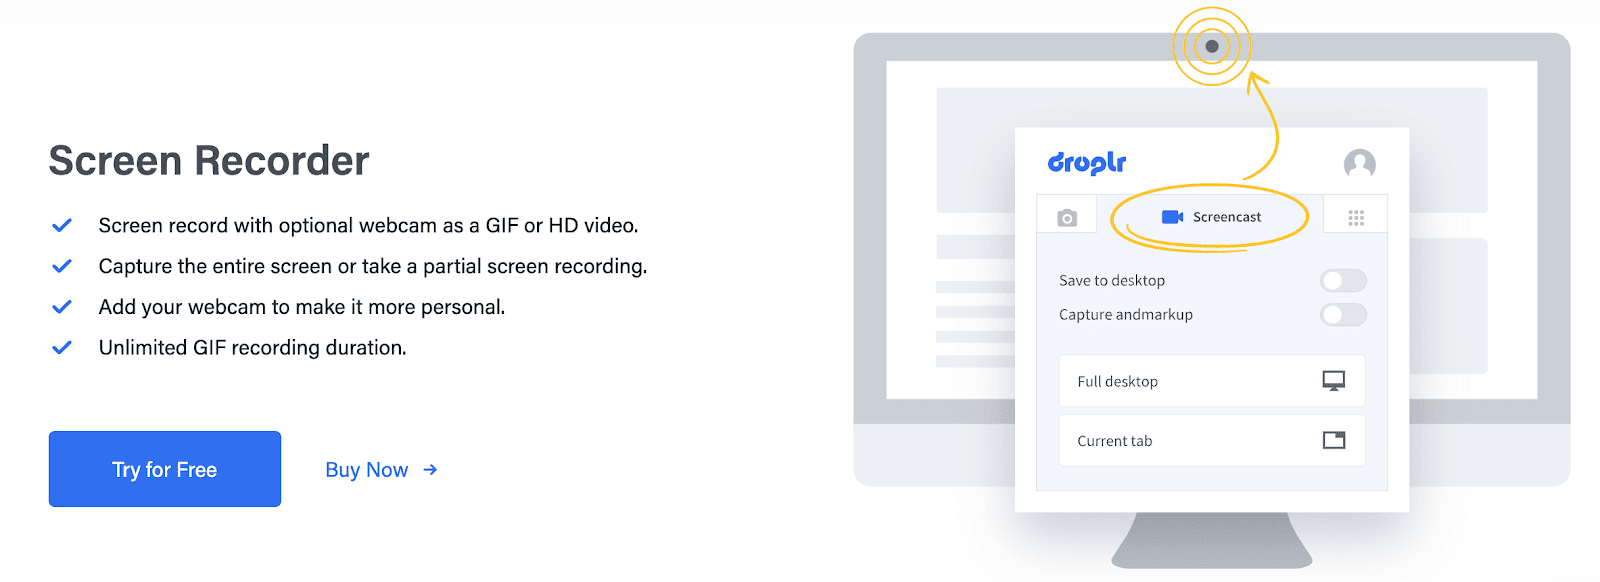 Droplr Screen Recorder